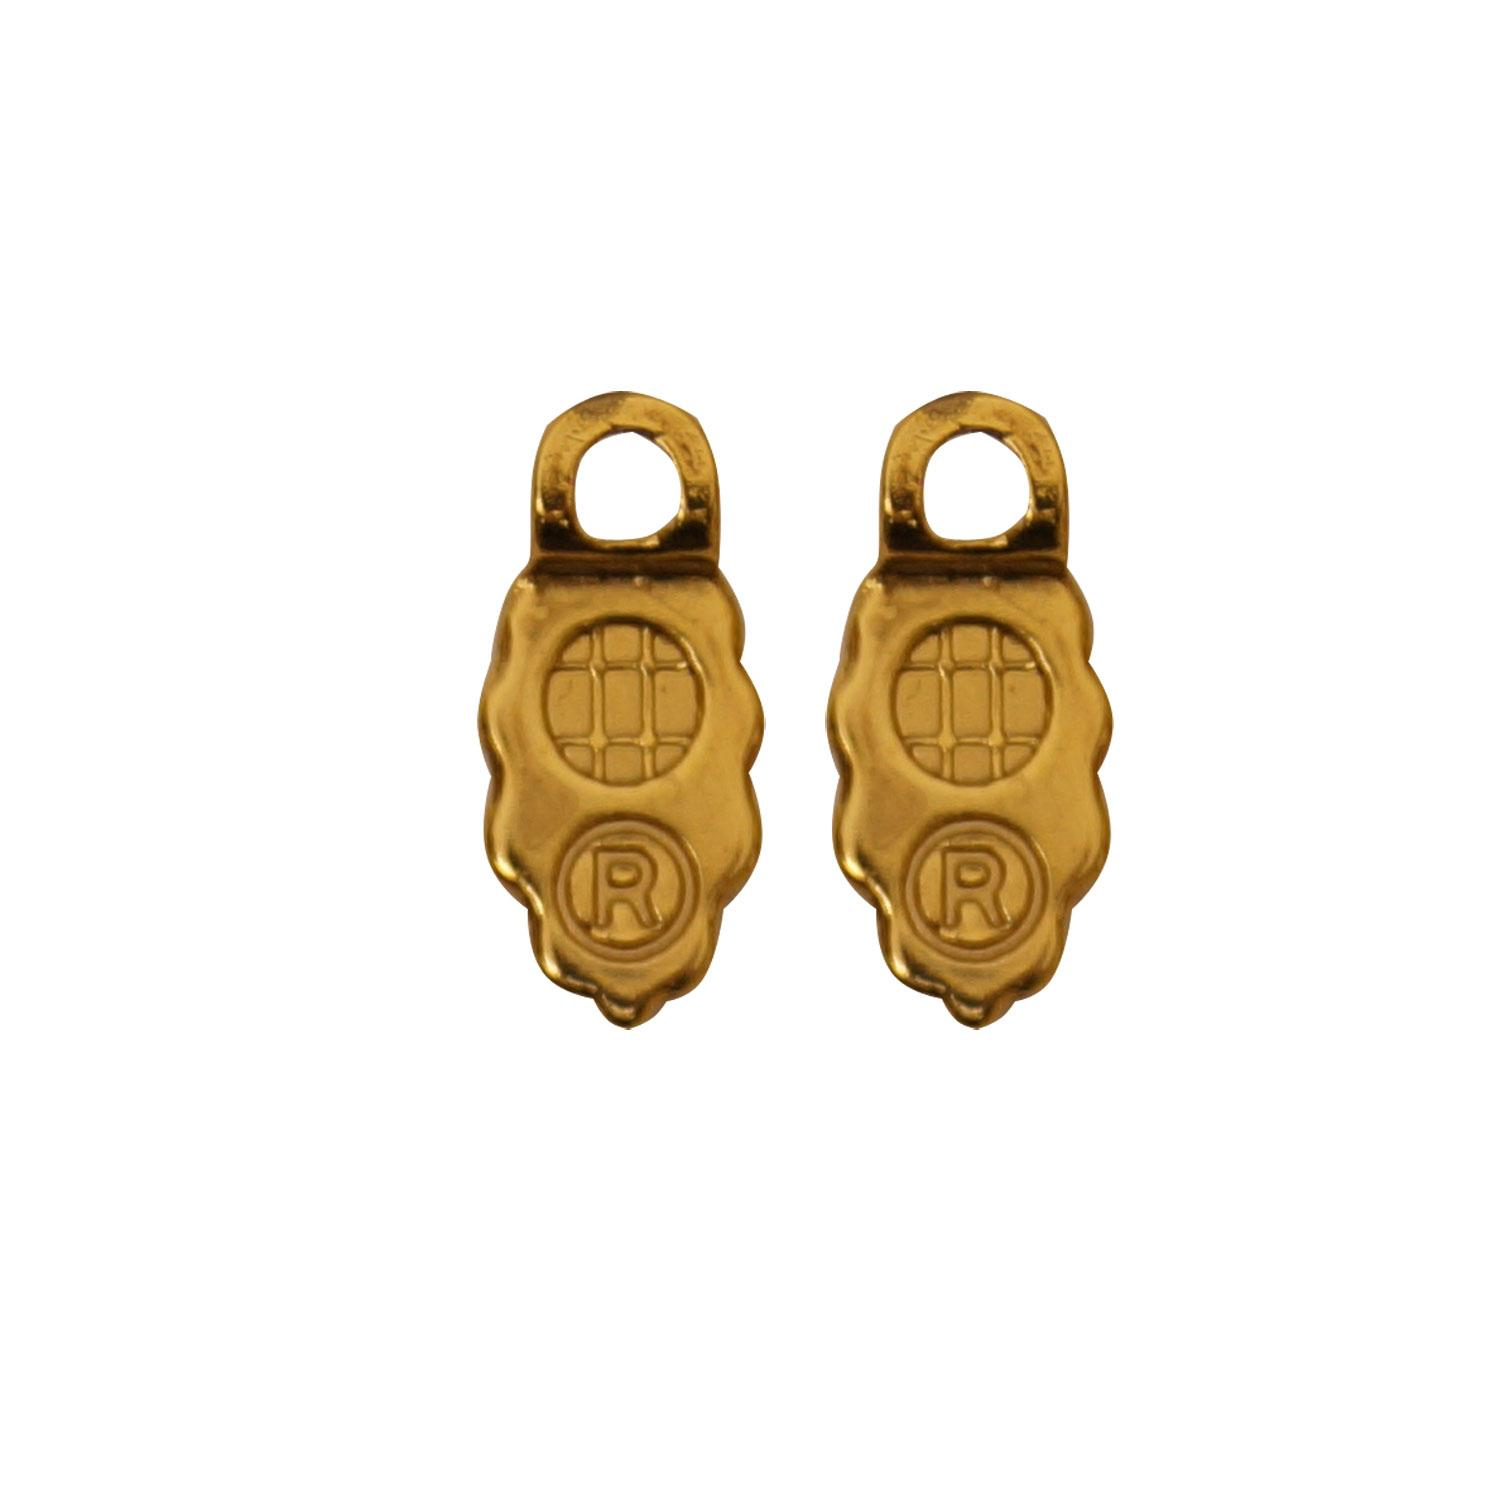 18K Gold Plated Earring Bails - 12 Pair